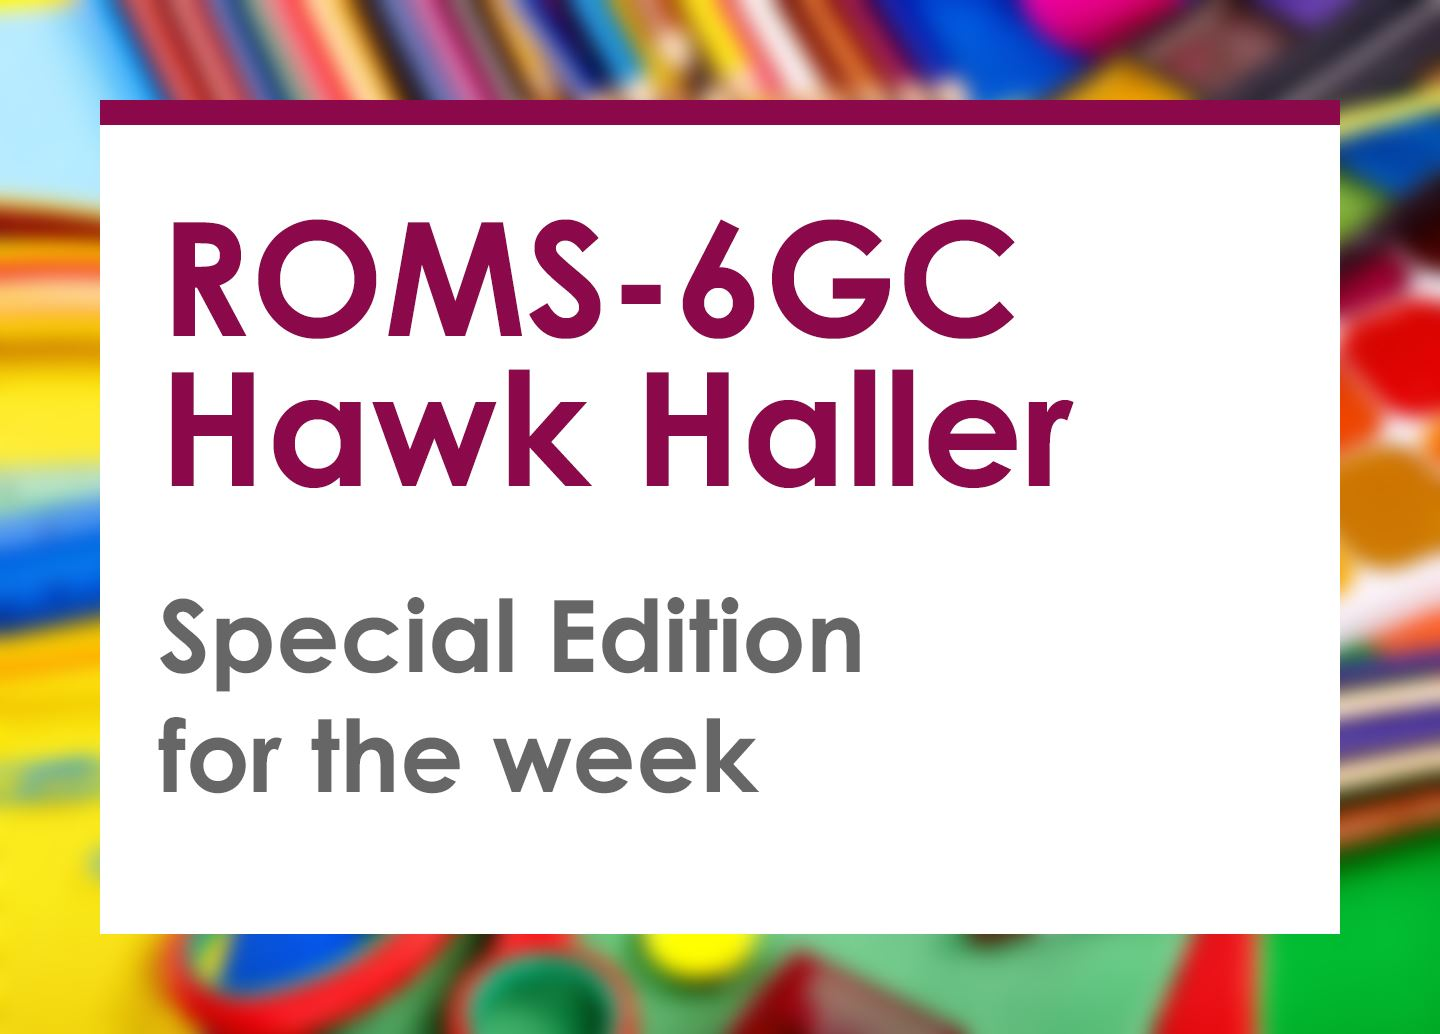 6GC Hawk Haller-Special Edition Newsletter